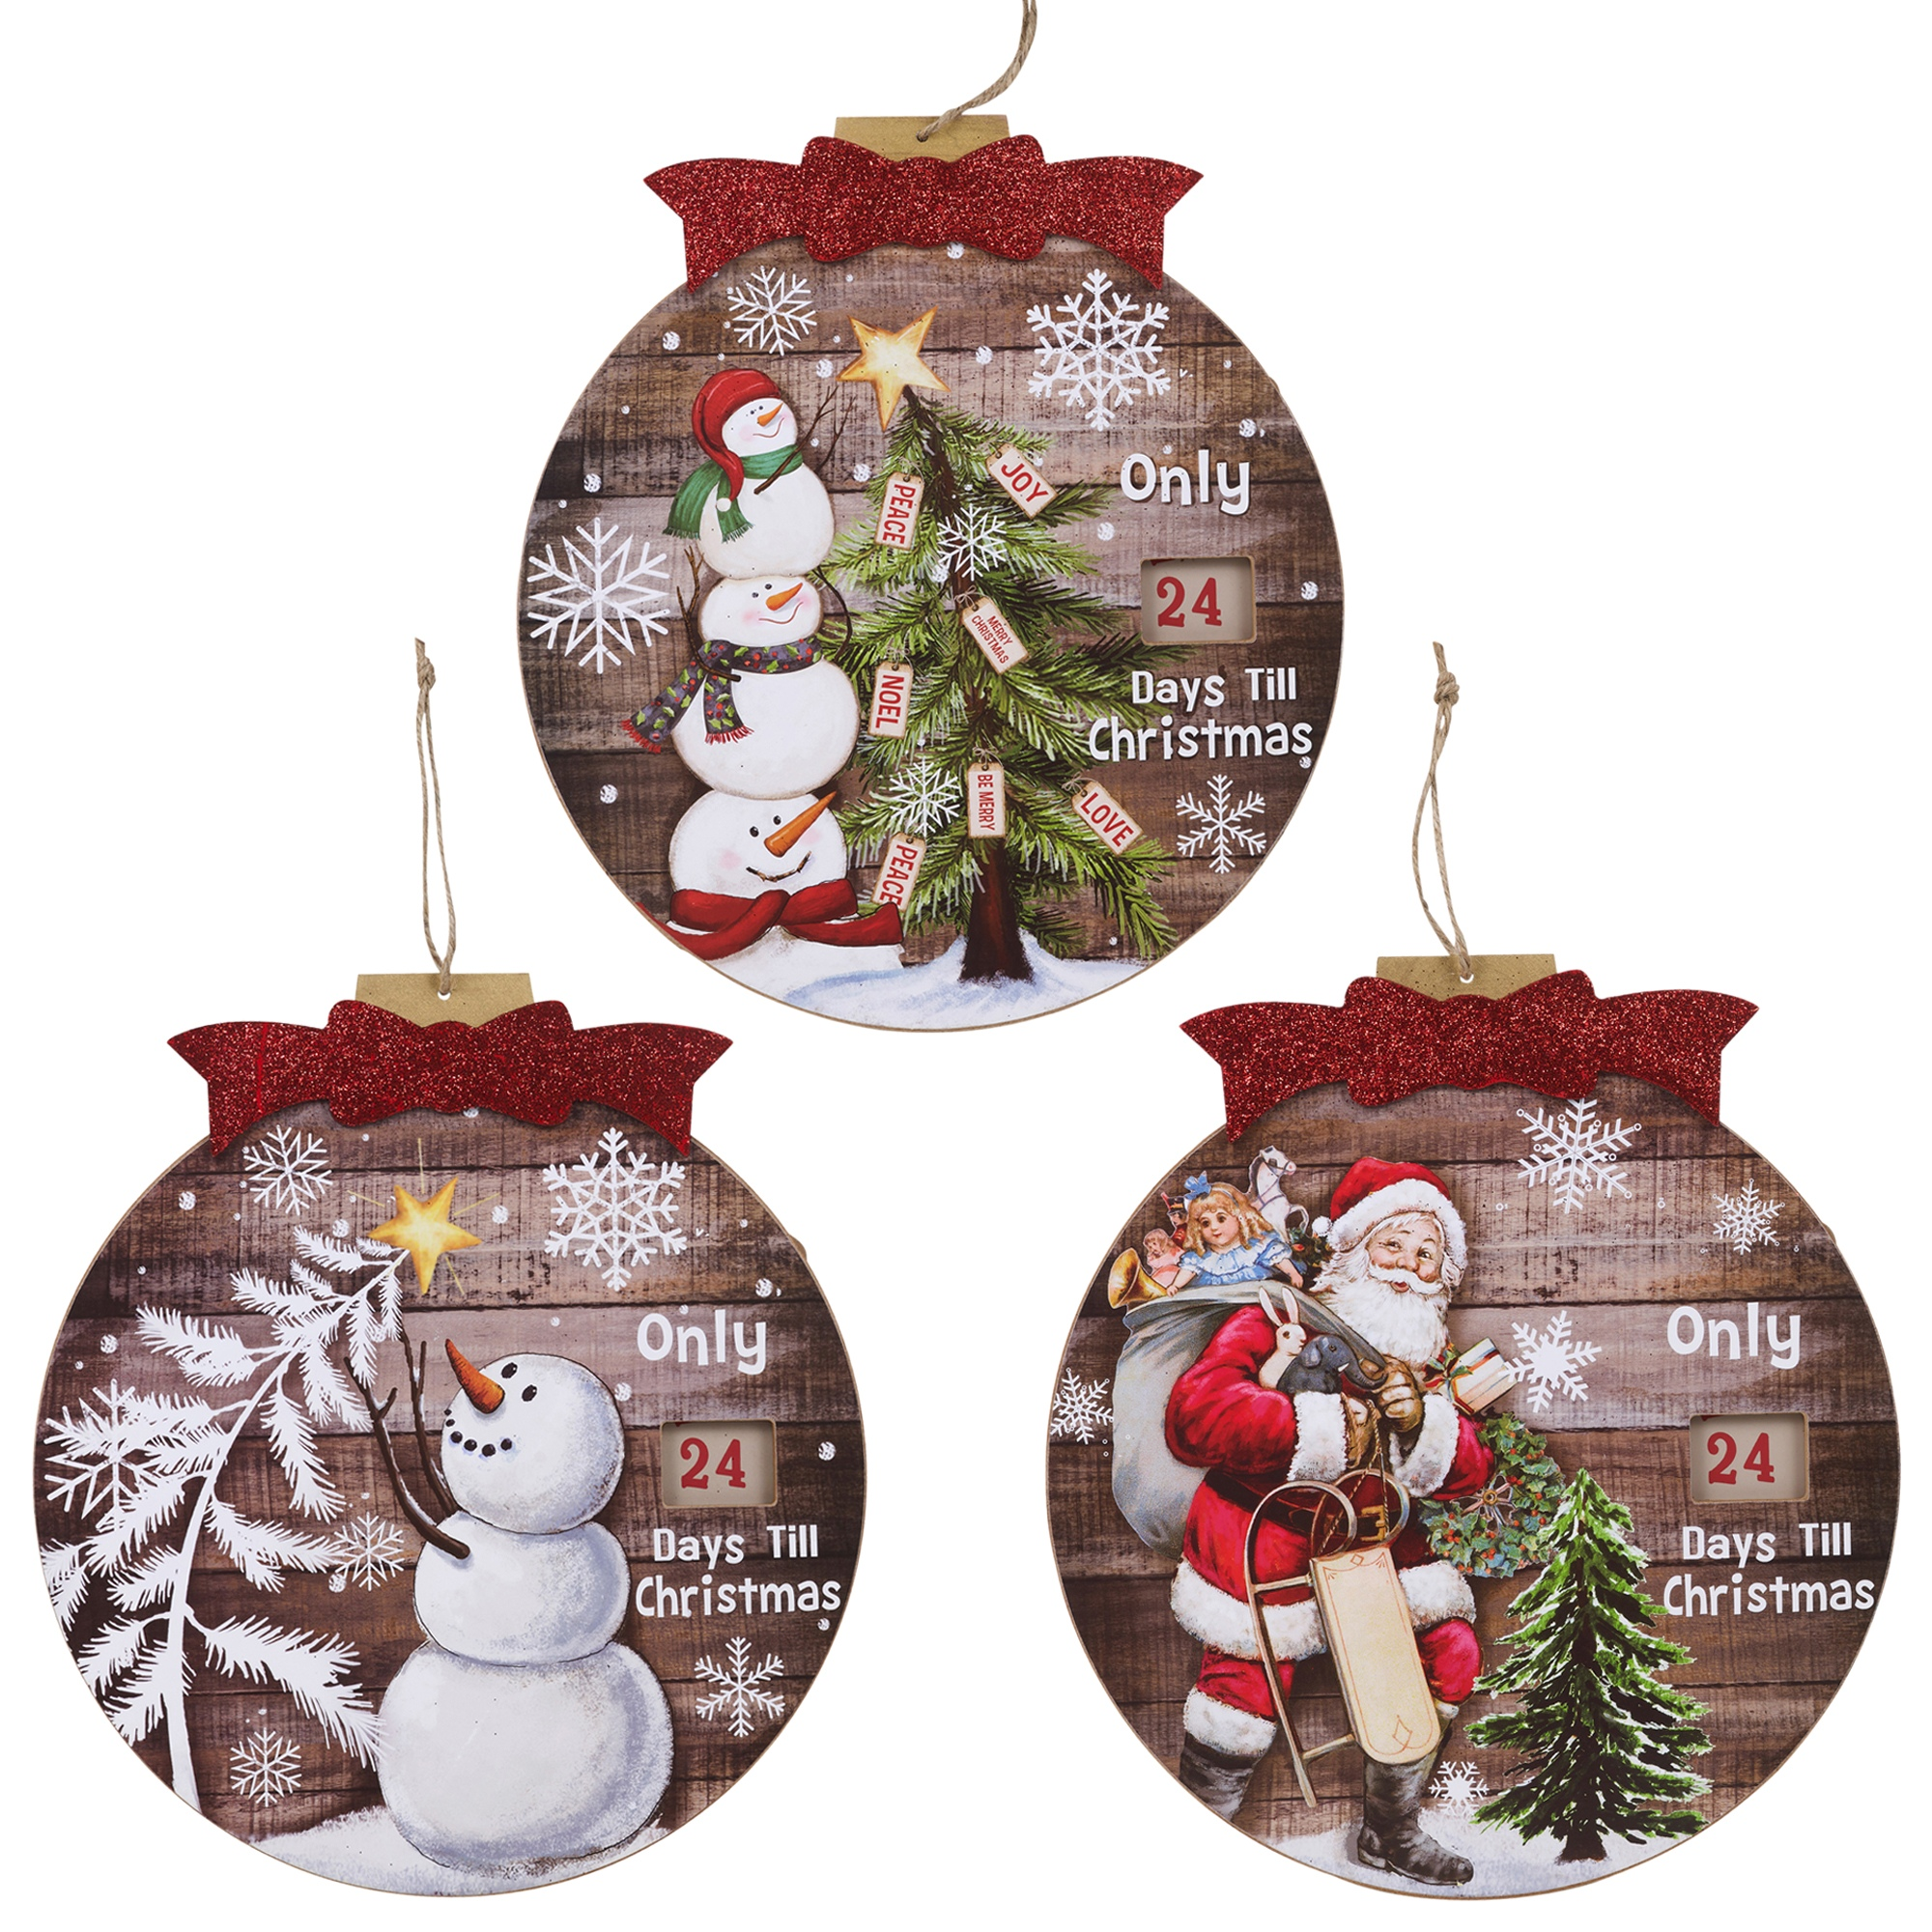 Days Till Christmas Uk.Details About Hanging Countdown To Christmas Advent Calendar Wooden Santa Snowman Plaque Sign